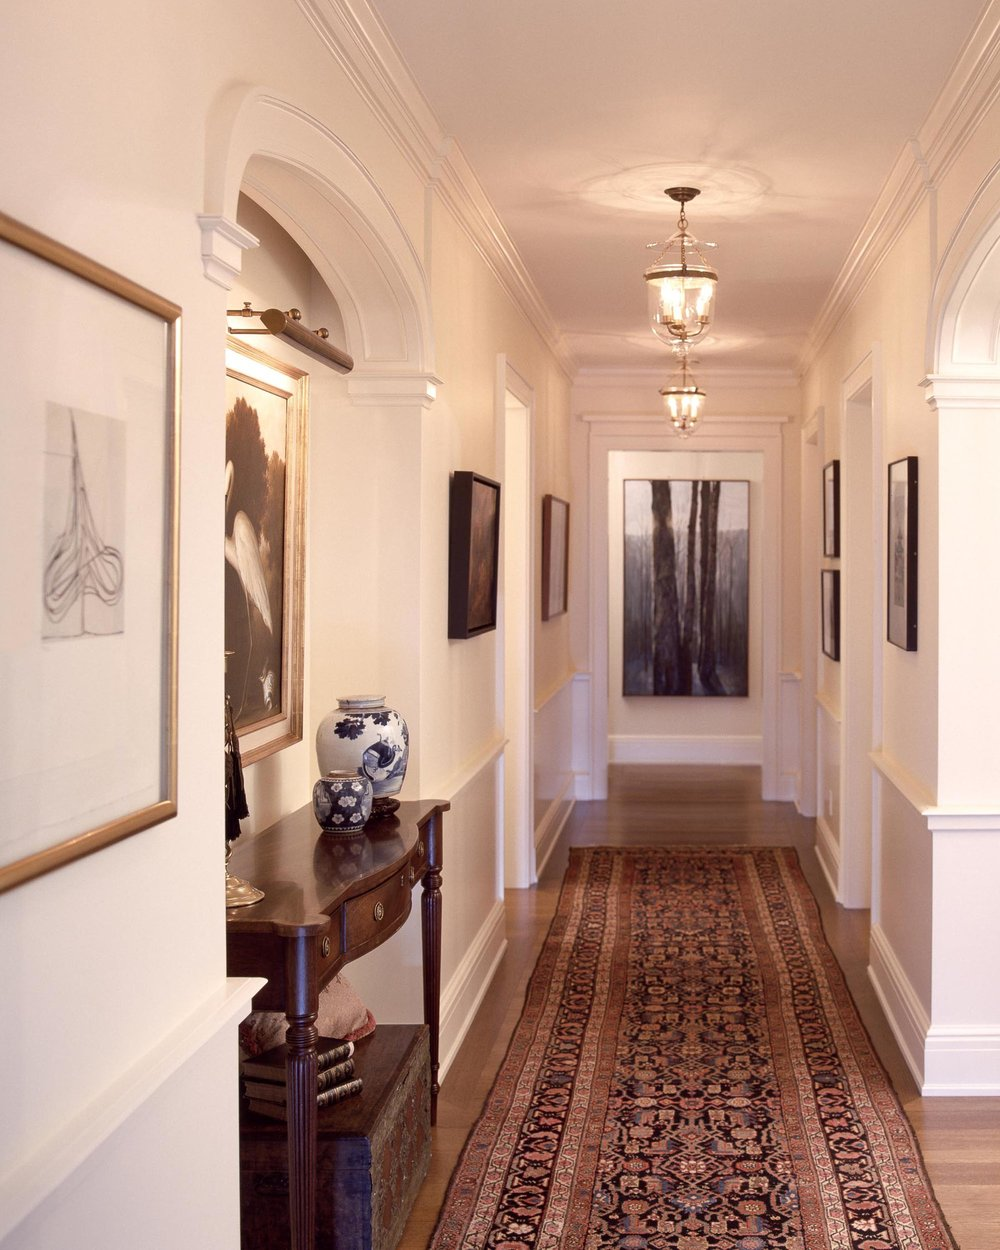 Hallway with carpet, frames on the wall, wooden table and vases on the top